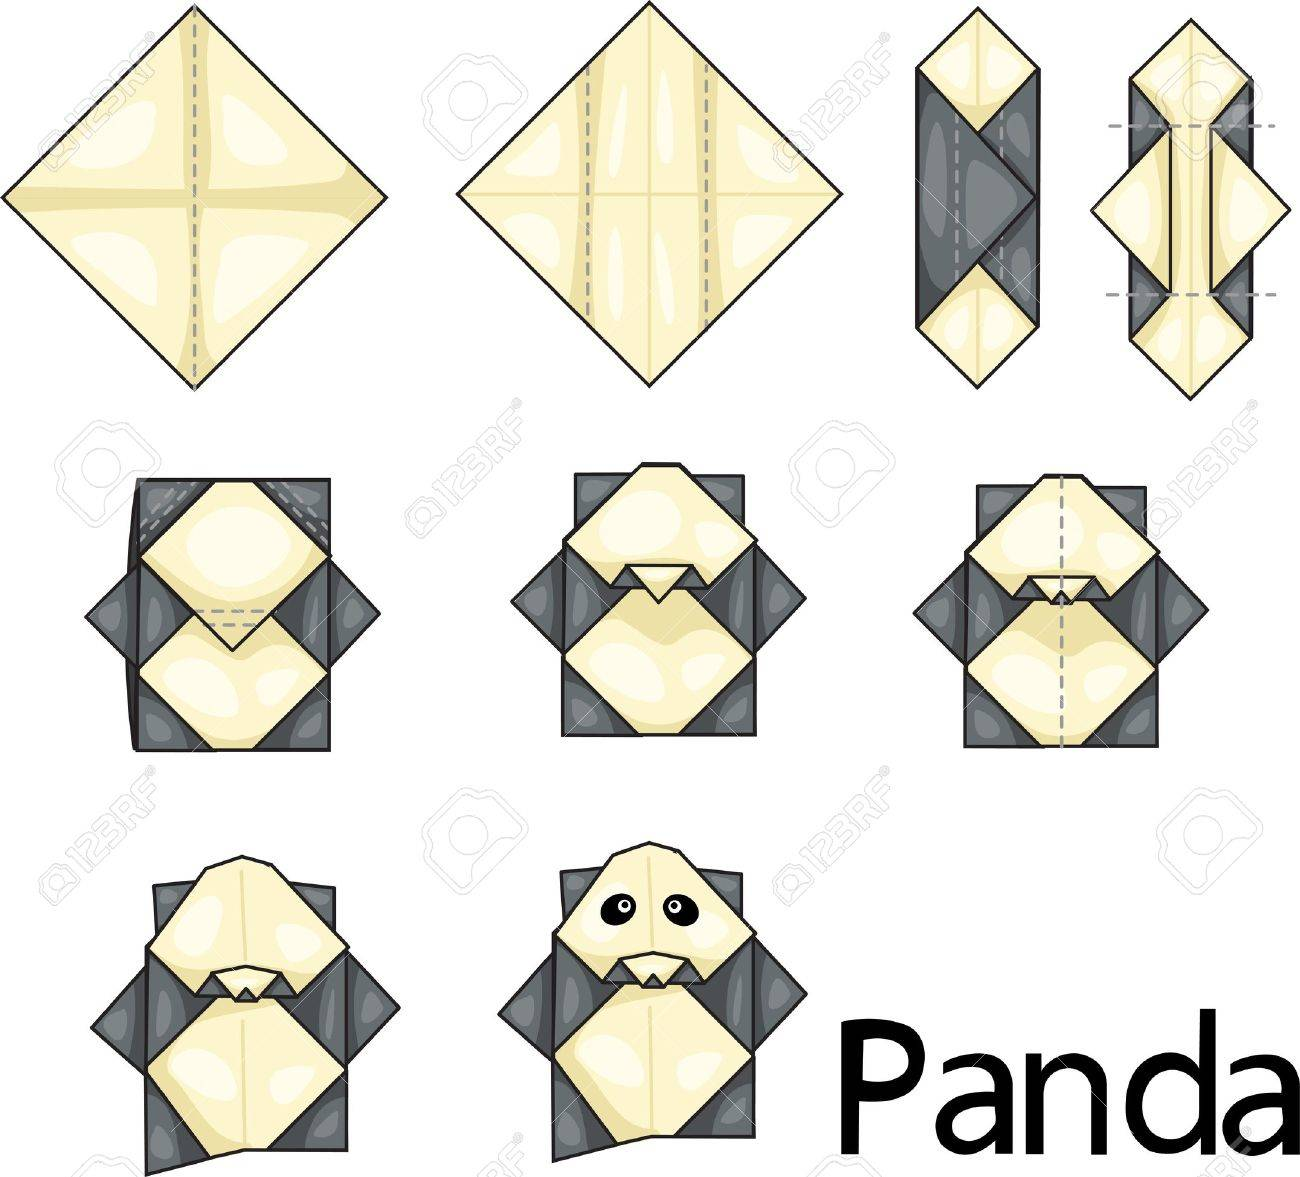 Illustrator Of Origami With Panda Stock Vector